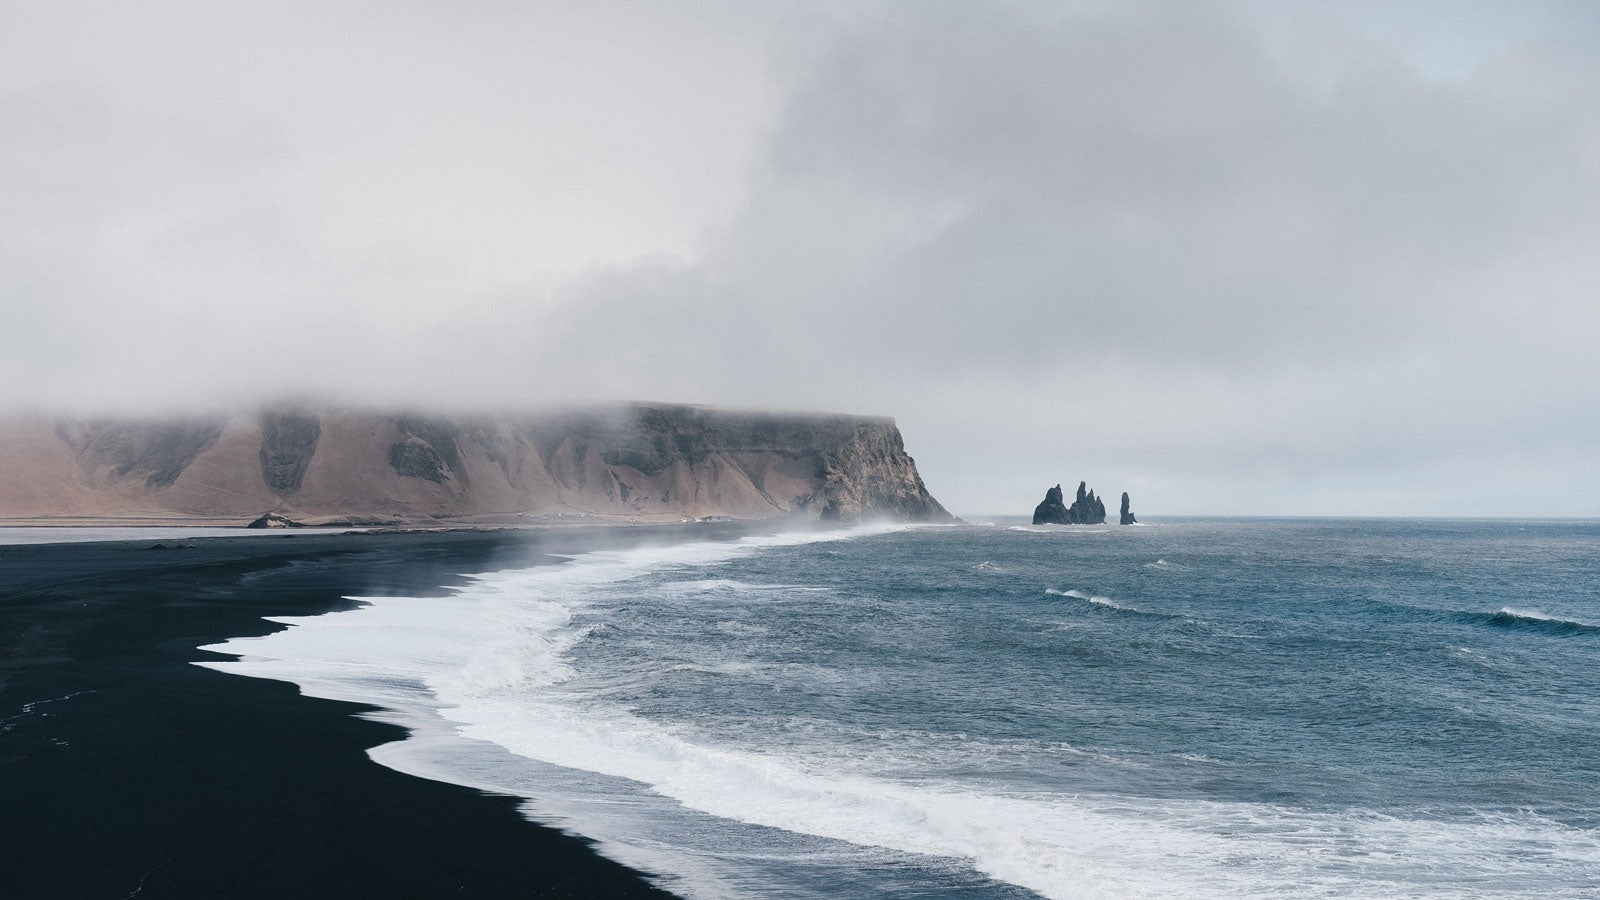 Icelandic beach with black sand and mist hanging over mountains in the far distance